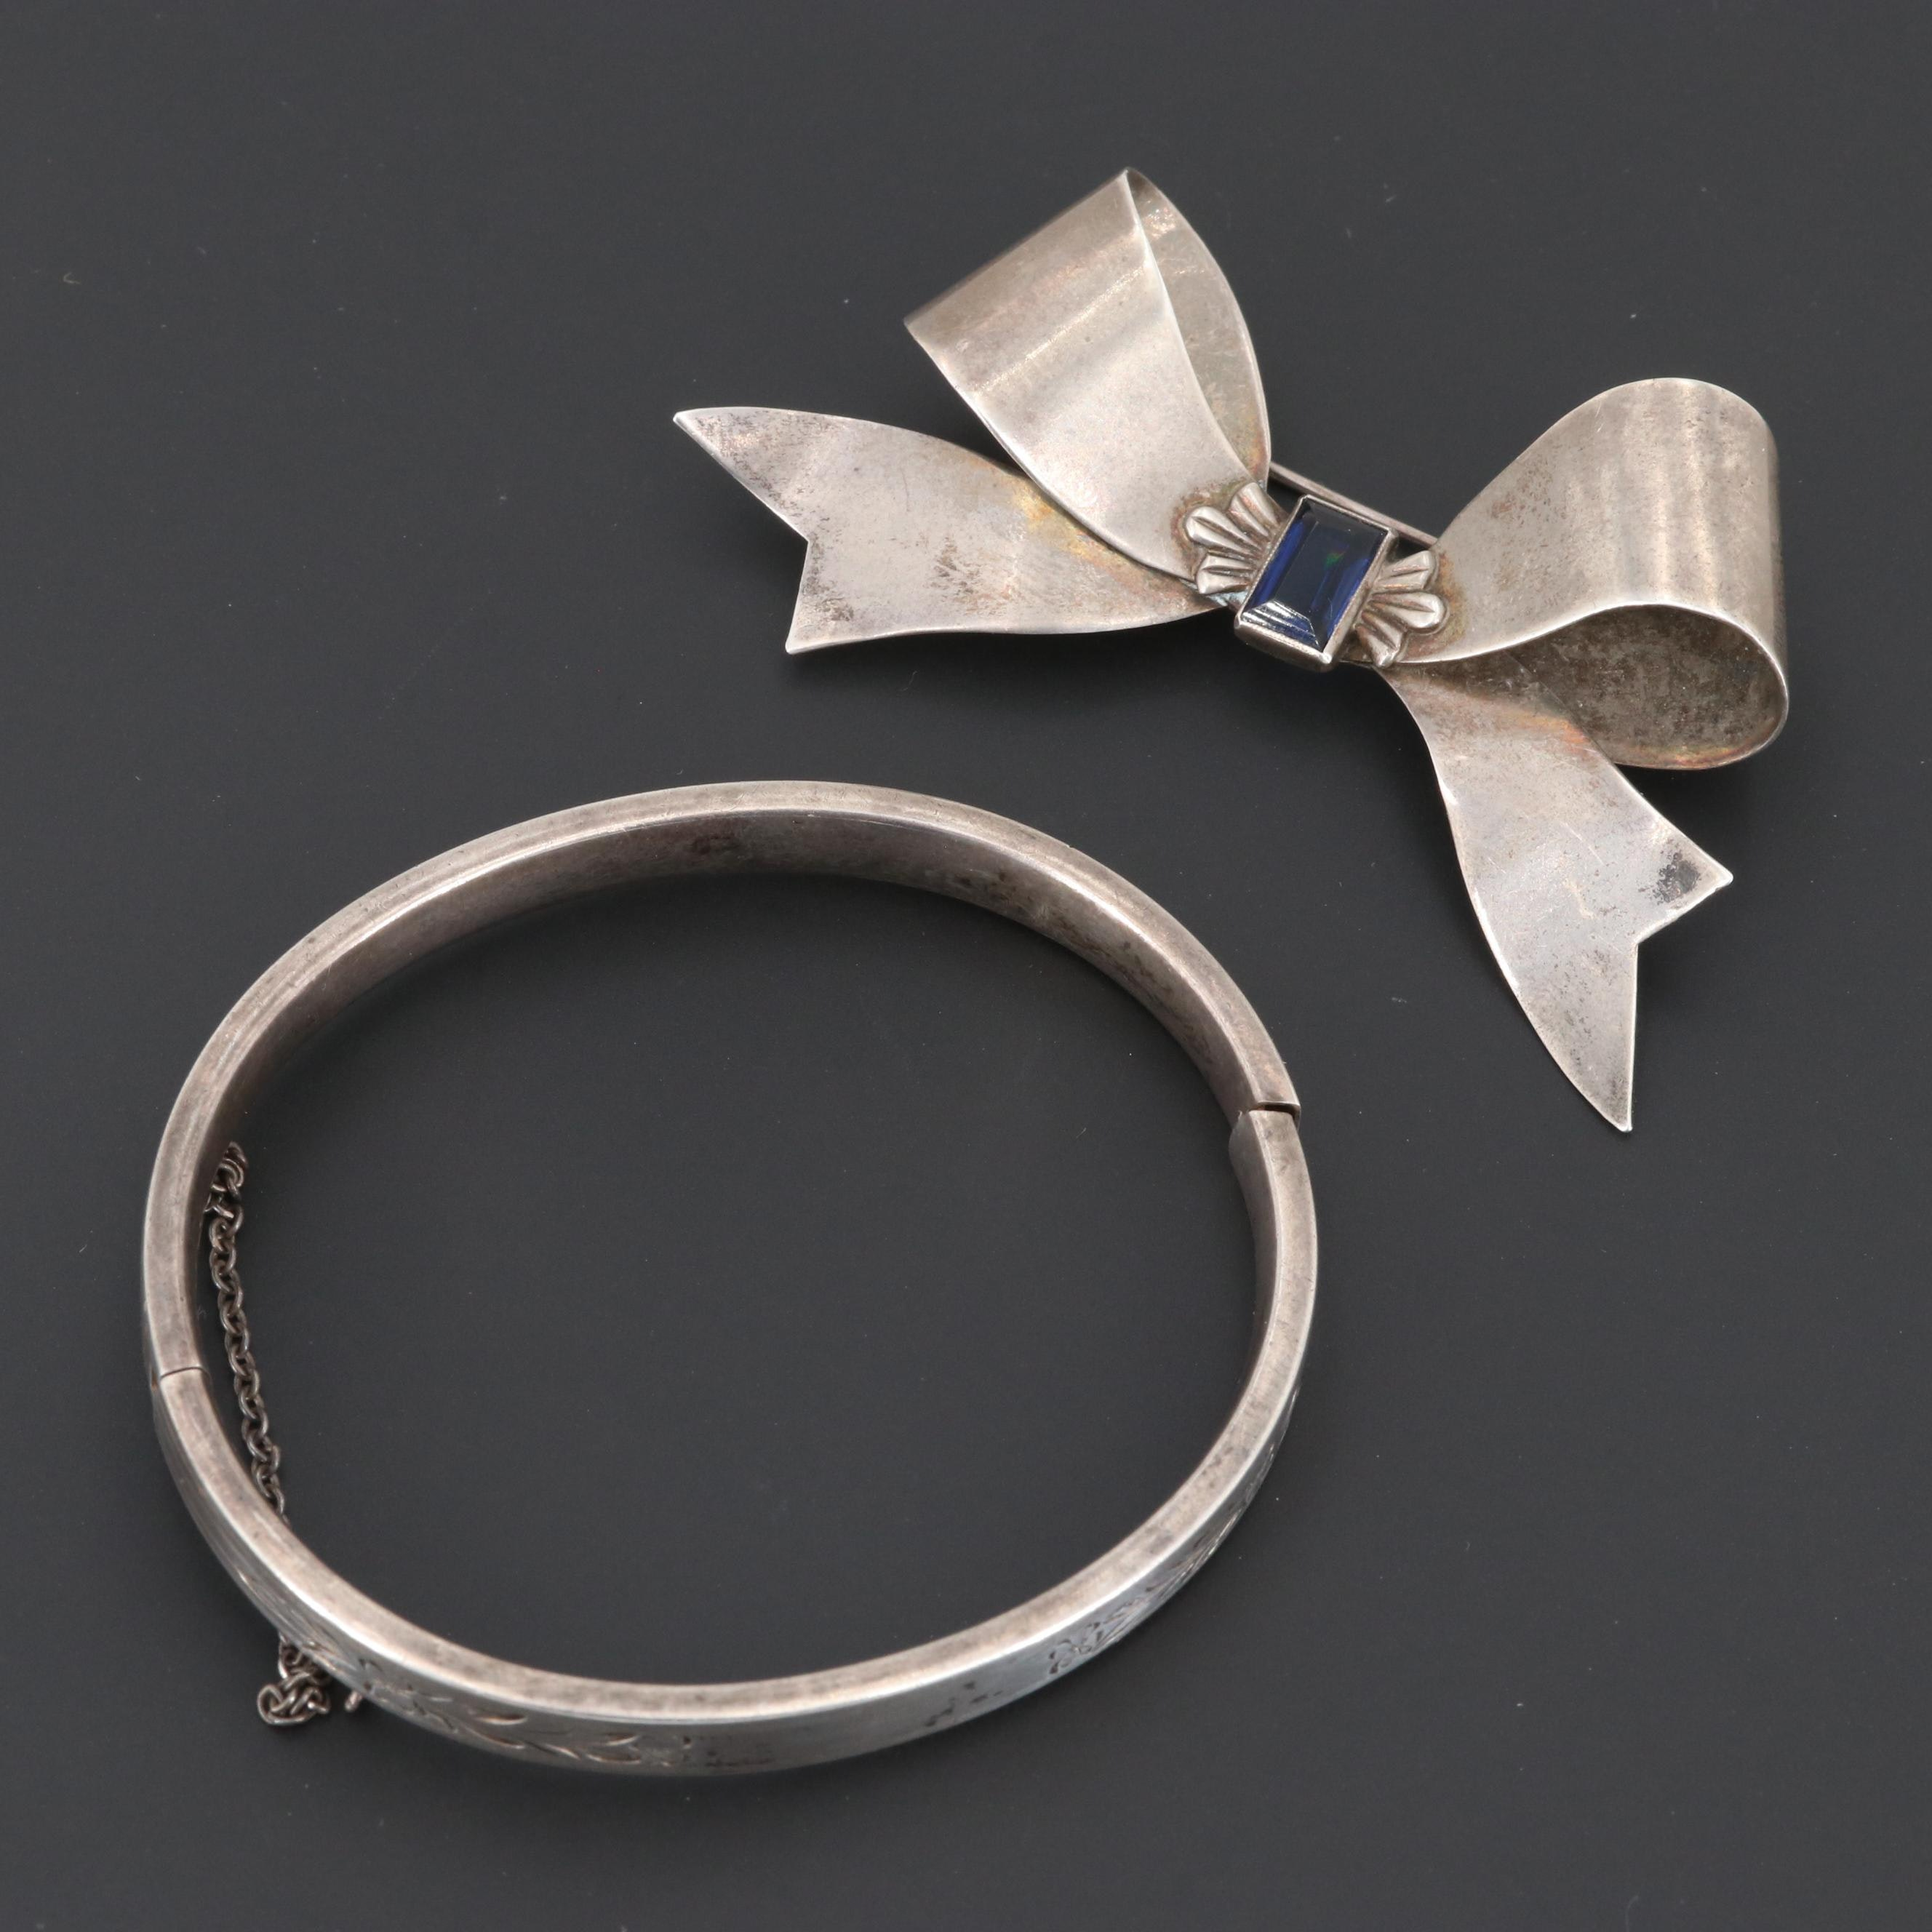 Circa 1930s Sterling Silver Hinged Bangle Bracelet and Glass Bow Brooch